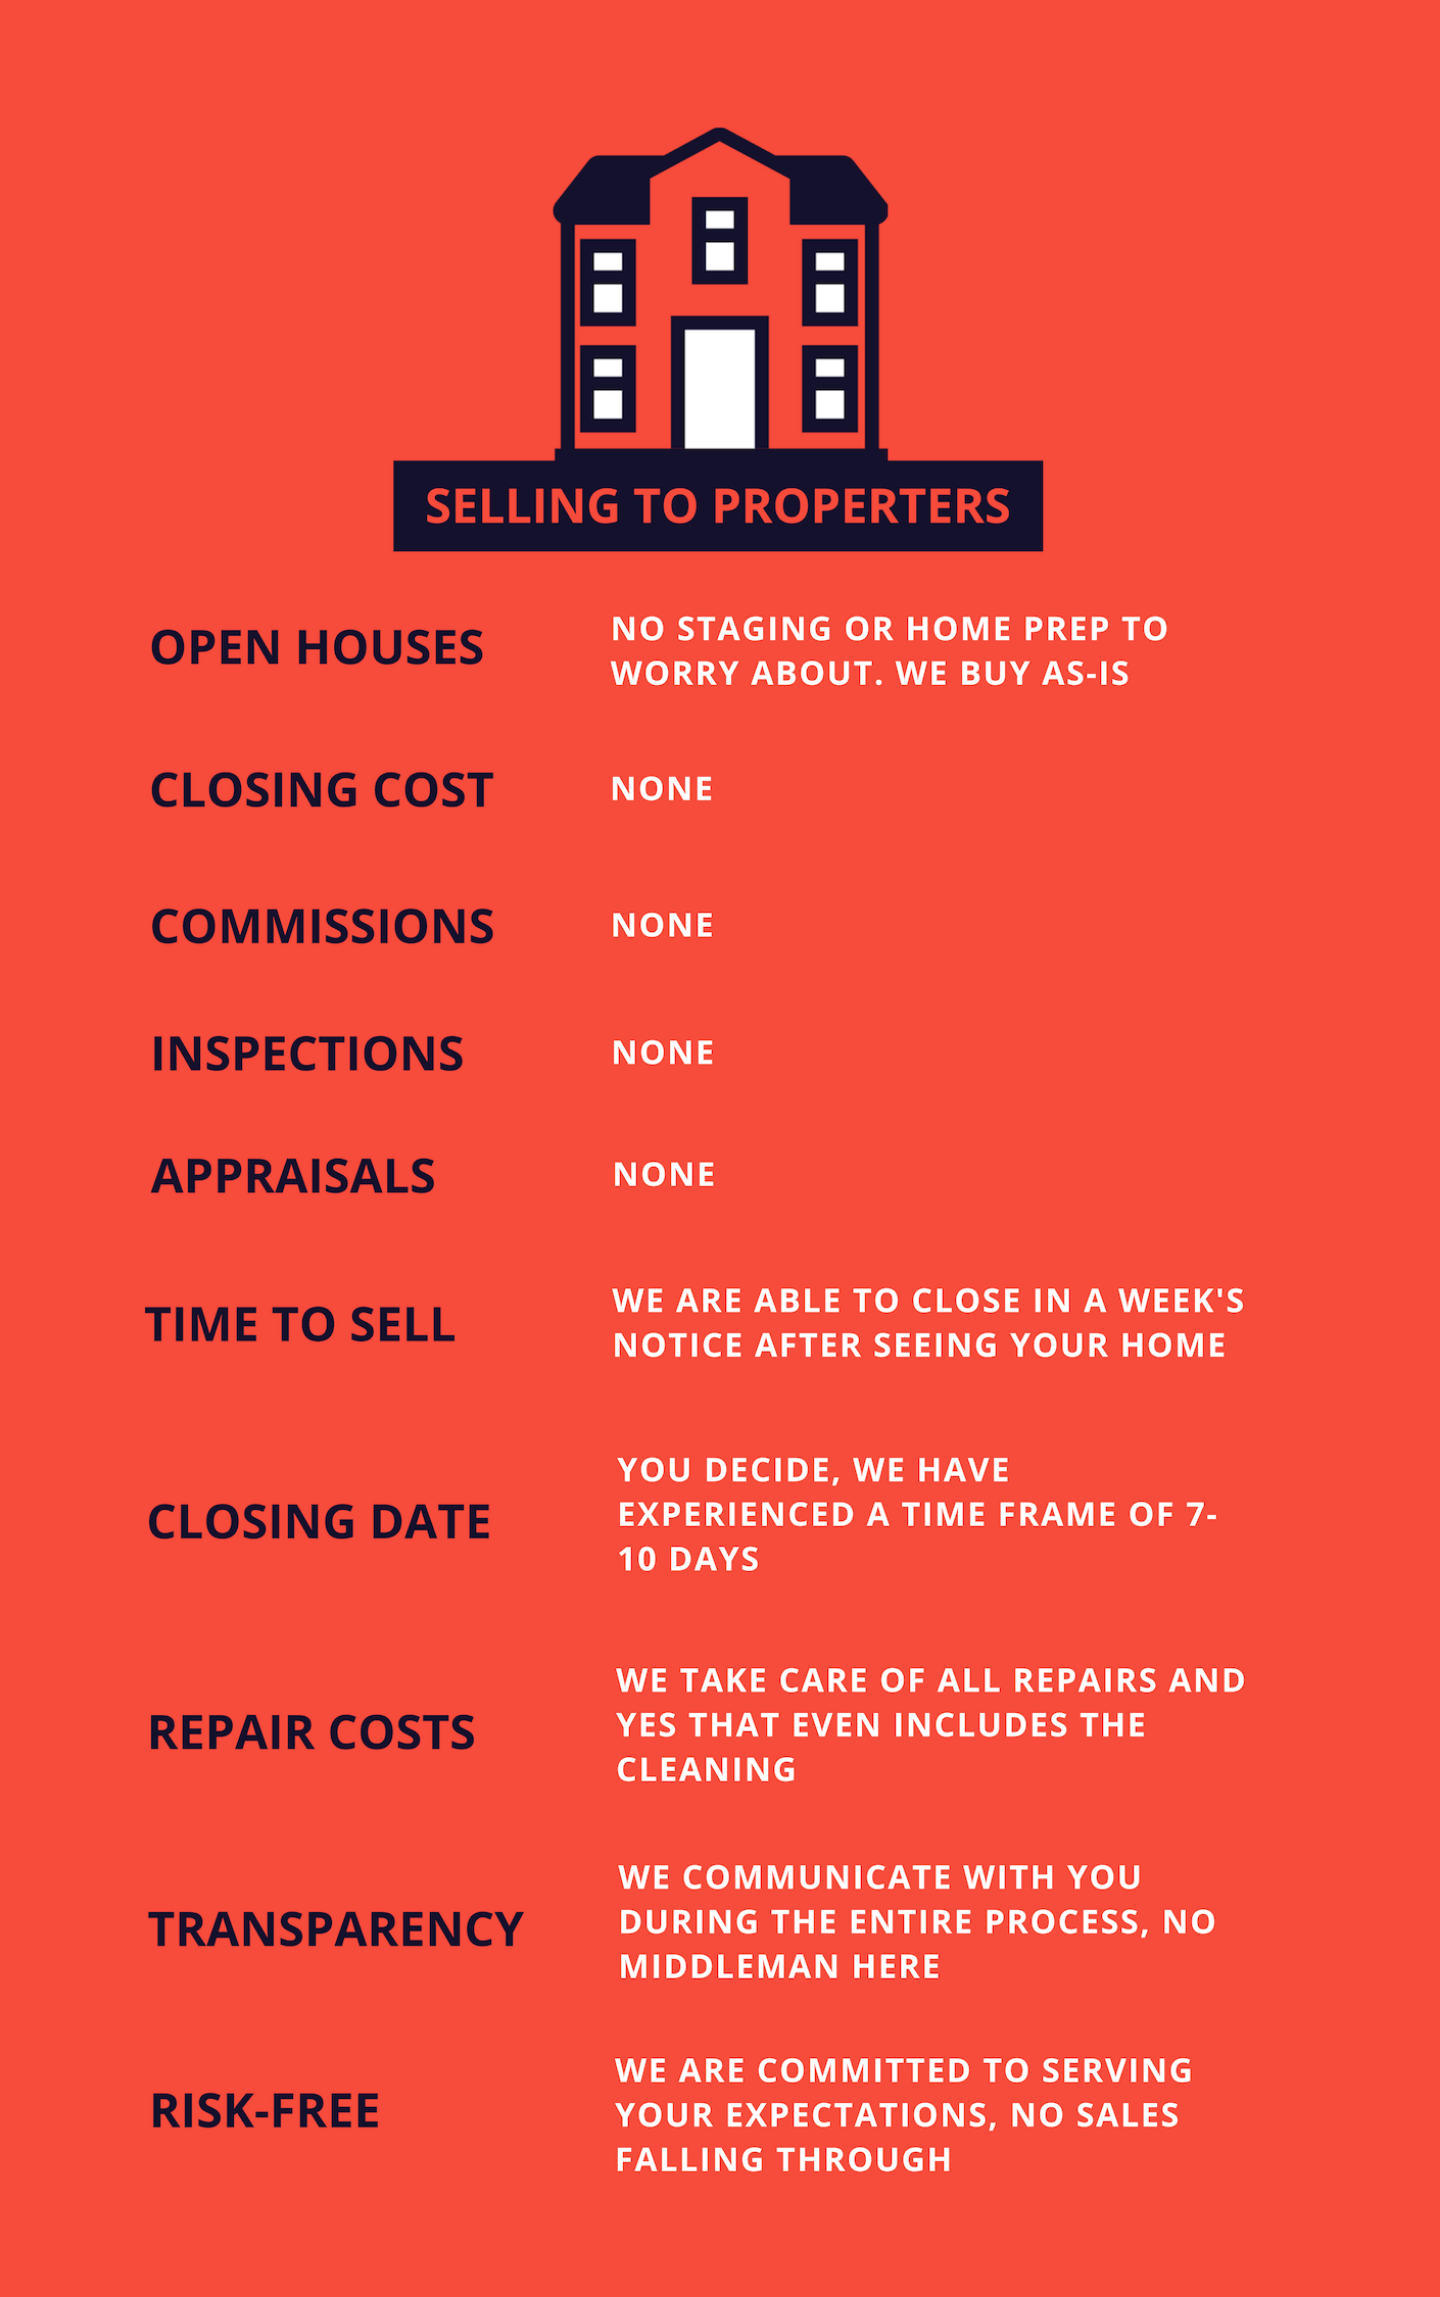 Properters.com - The quick and easy way to sell your house.